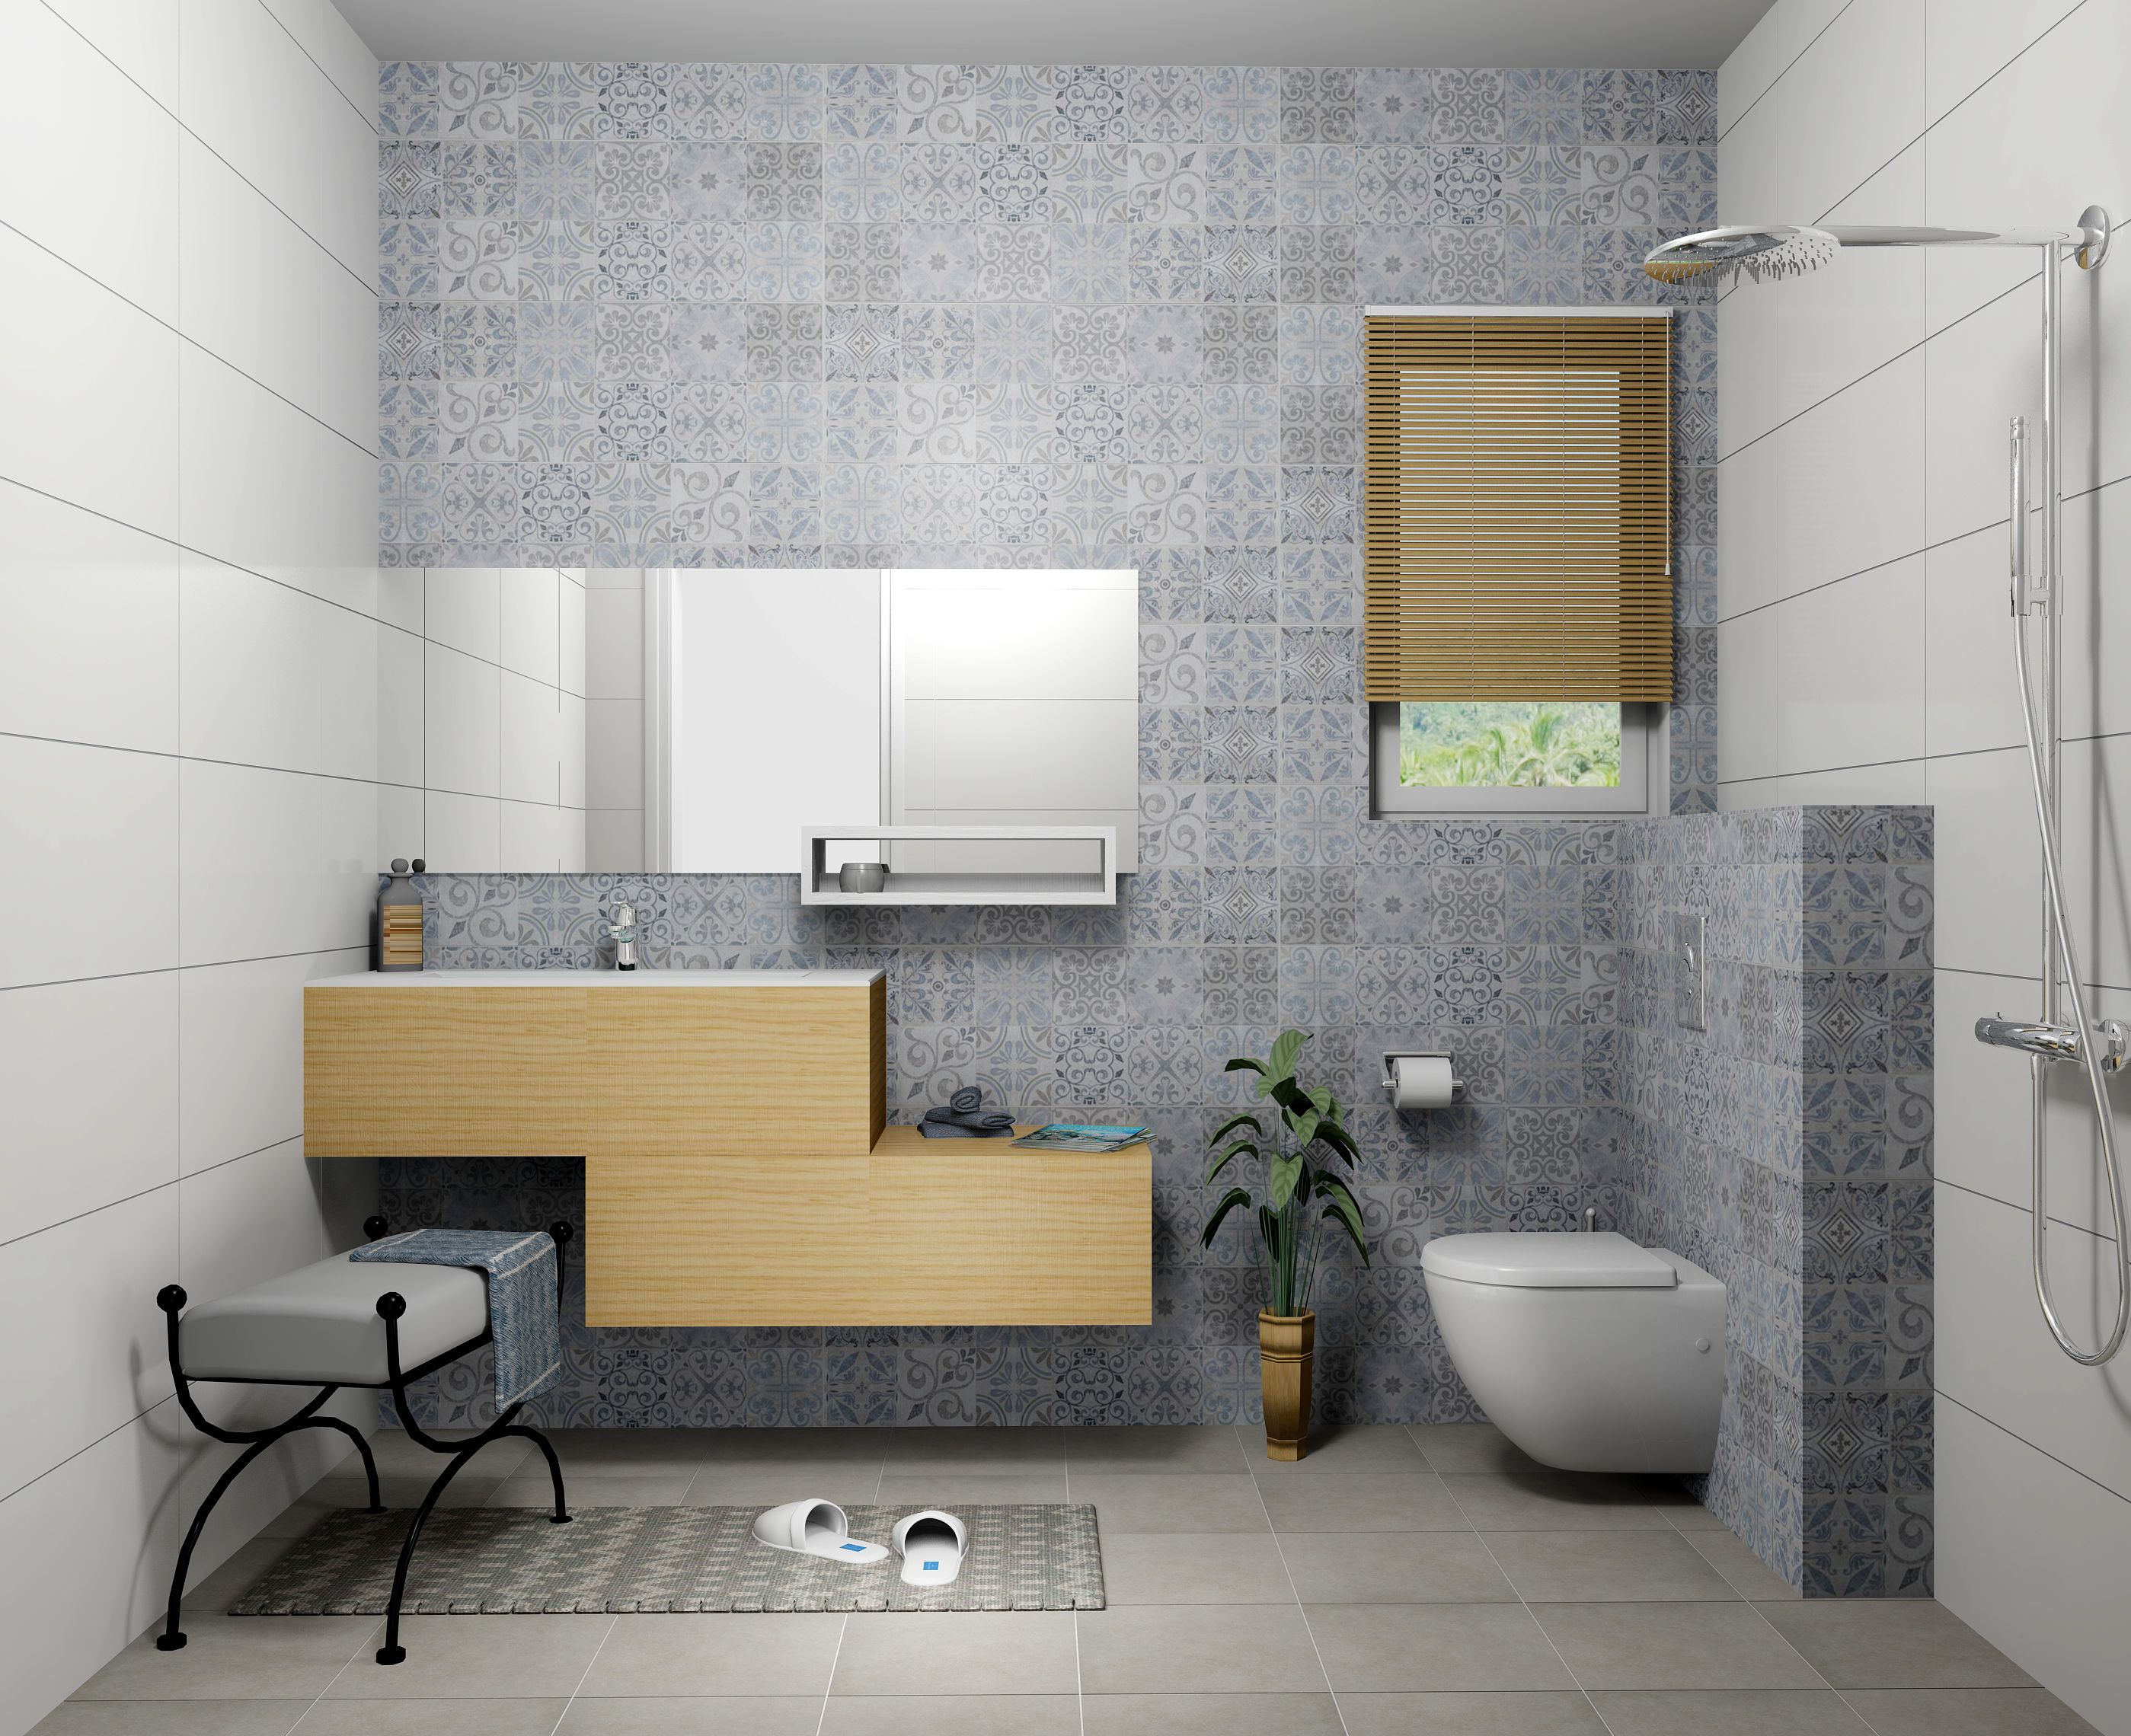 Badezimmer Fliesen Simulator Porcelanosa Antique Blue Concrete Silver Tiles Simulated By